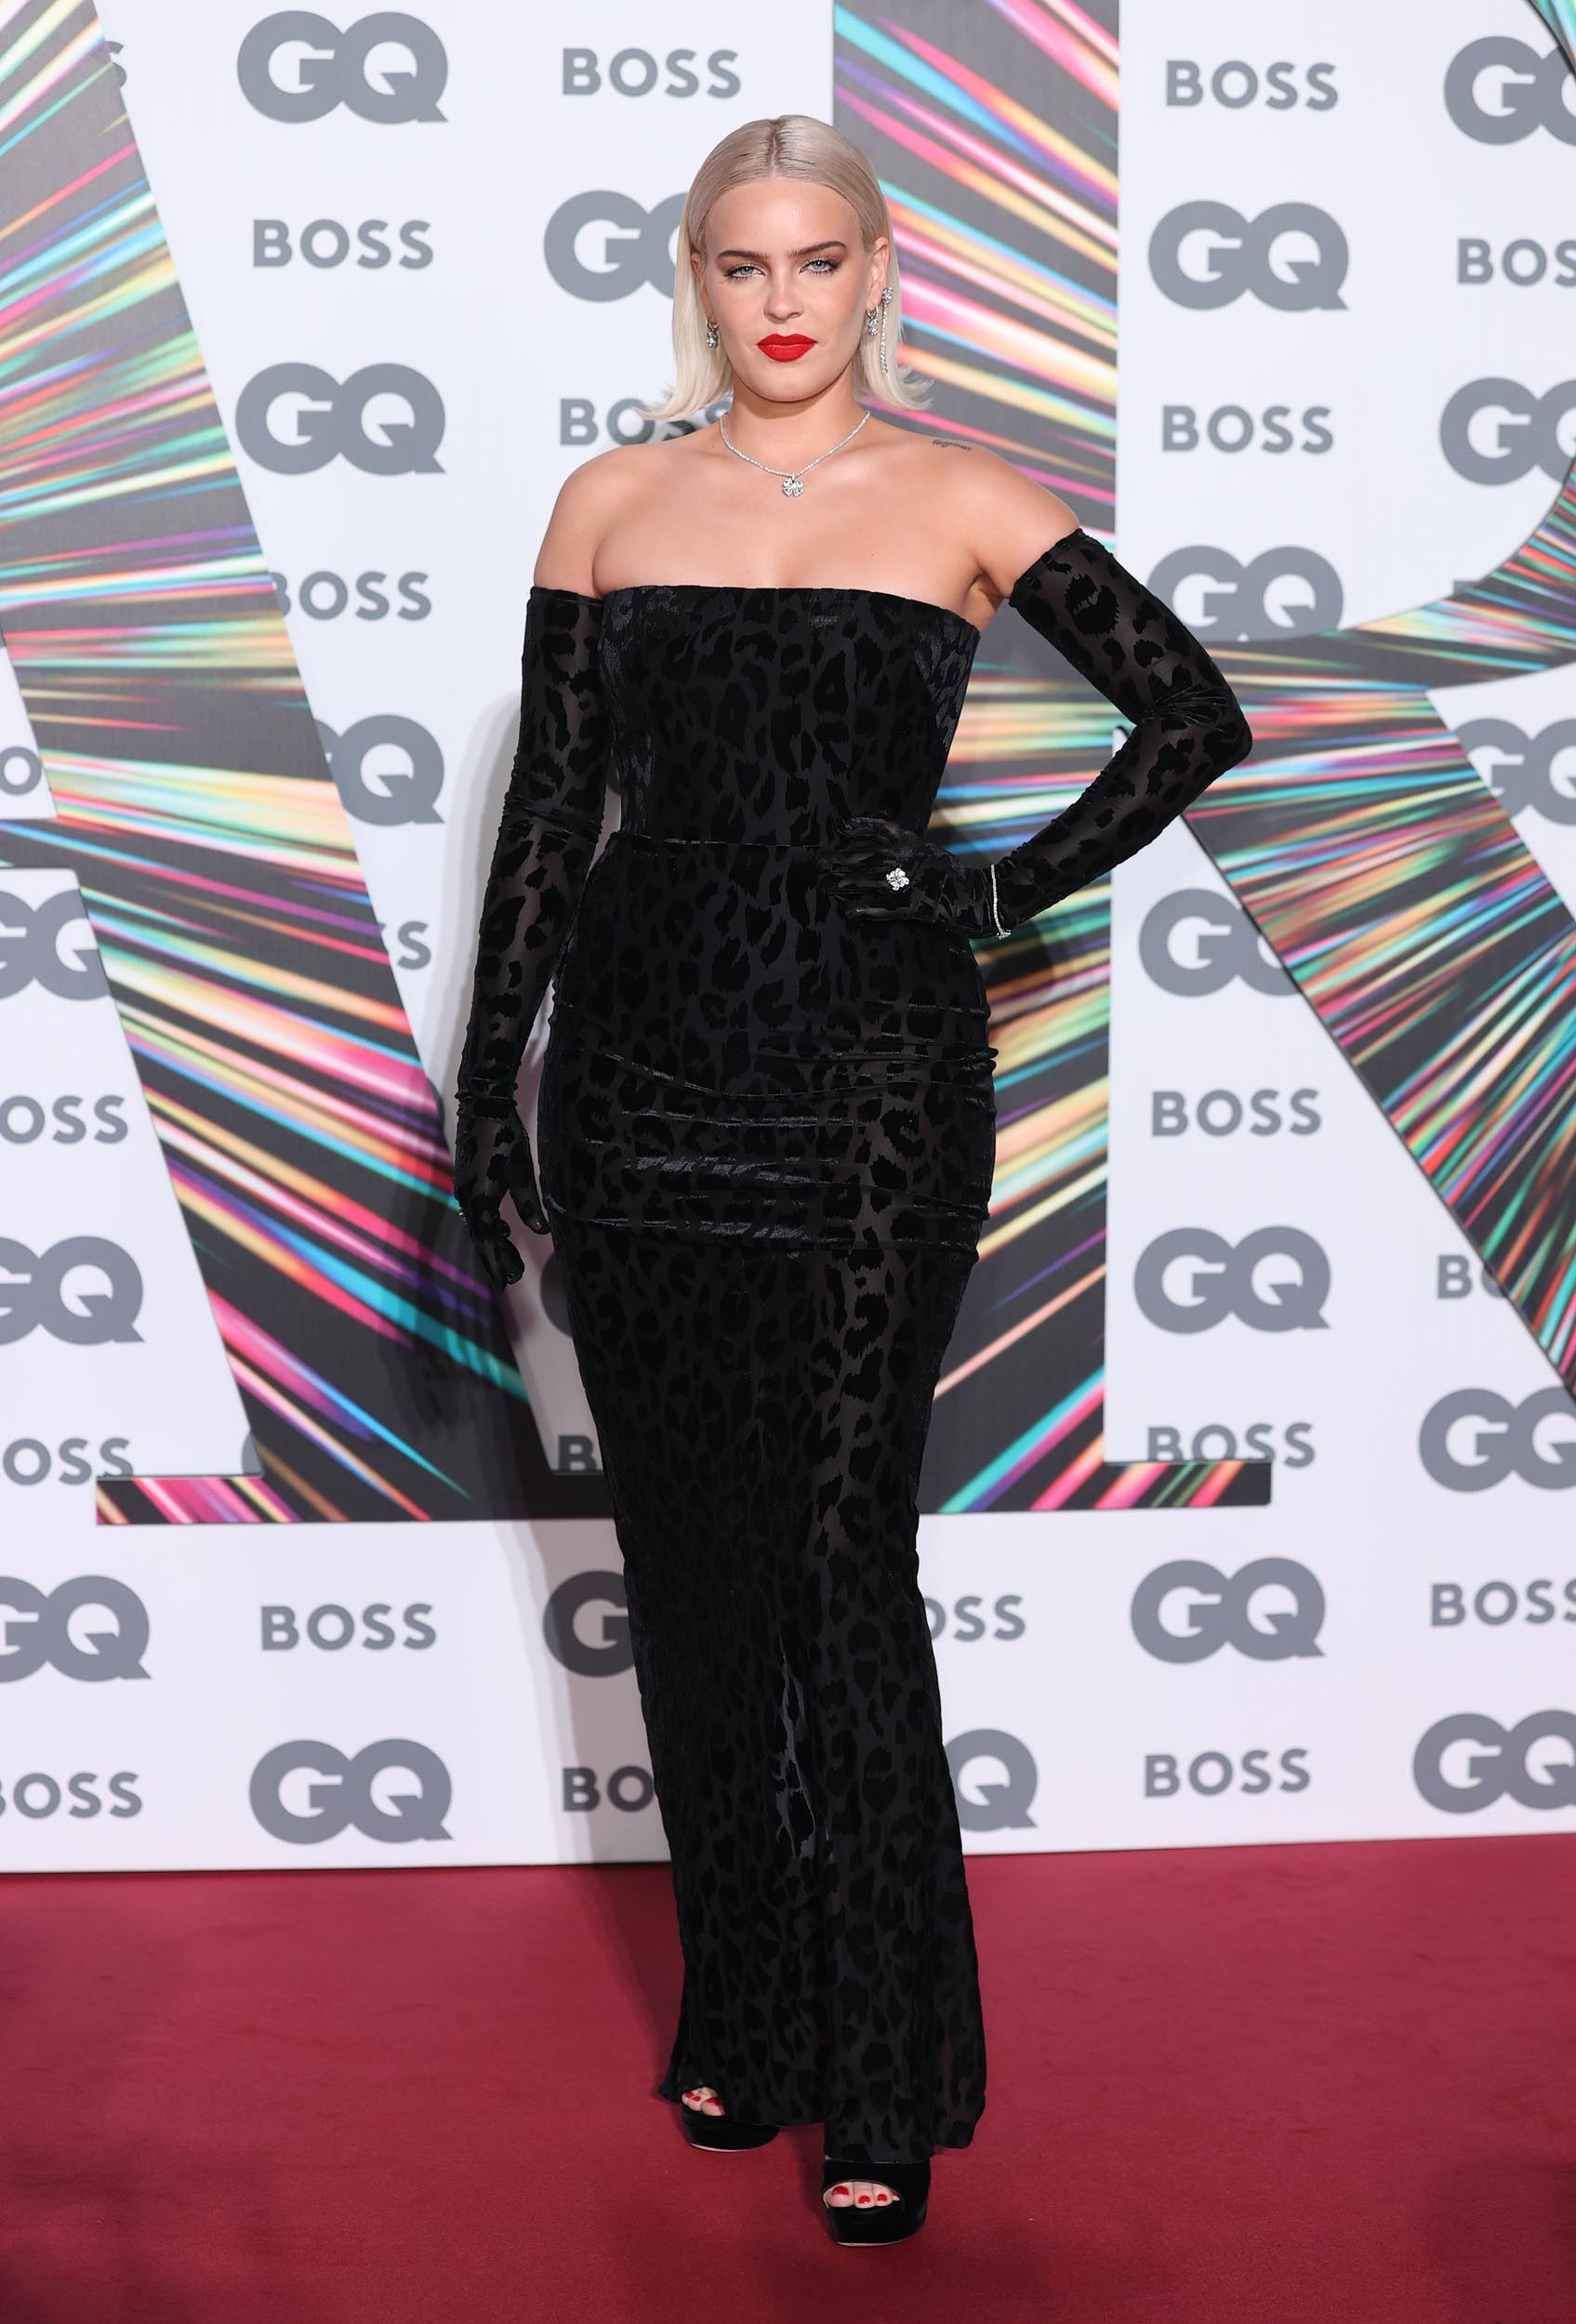 Anne-Marie has revealed she has struggled all her life to come to terms with the way she looks